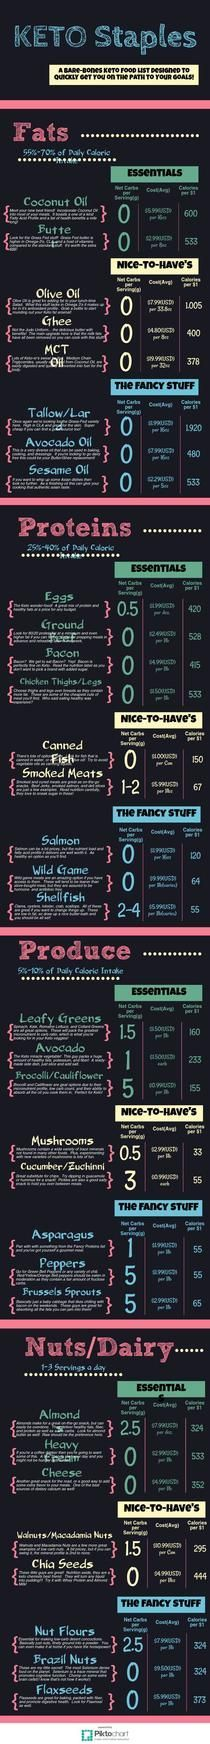 Keto Diet Shopping List | Piktochart Infographic Editor Cooking Ideas, Recipe Ideas, Om, Shopping Lists, Editor, Meal Planning, Low Carb Diet, Infographic, Low Carb Recipes